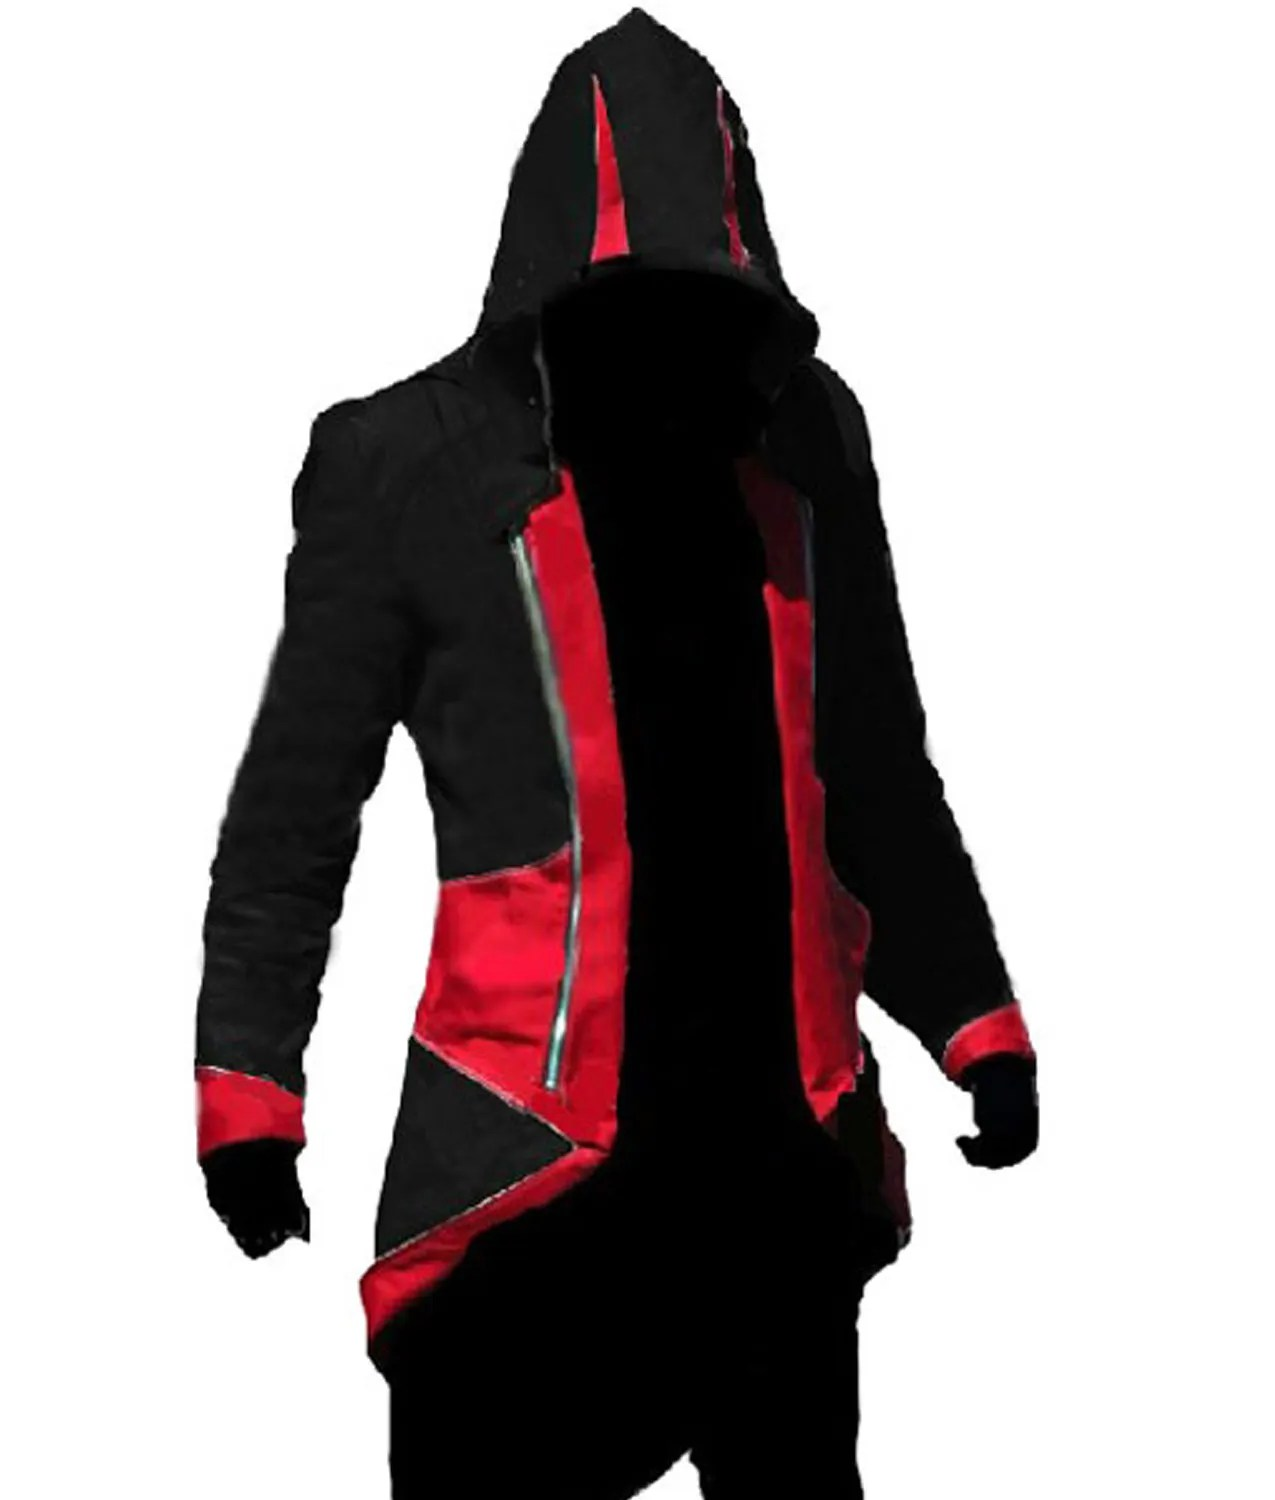 assassins-creed-3-connor-kenway-coat